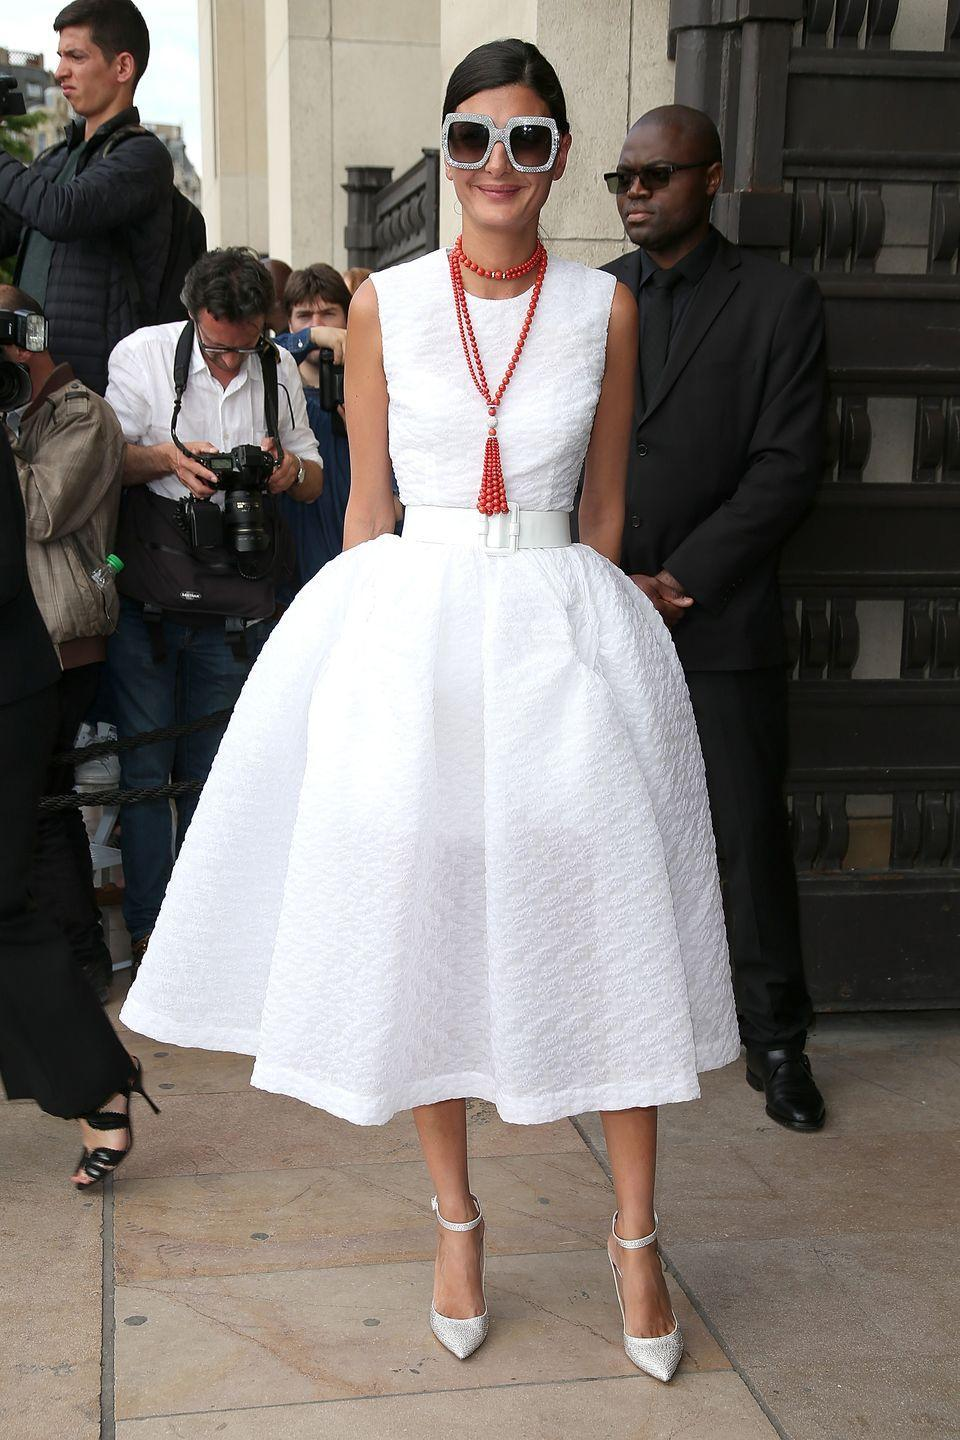 <p>She channelled her inner Audrey Hepburn in a feminine, full-skirted white dress worn with classic white heels and oversized shades in July 2015.</p>